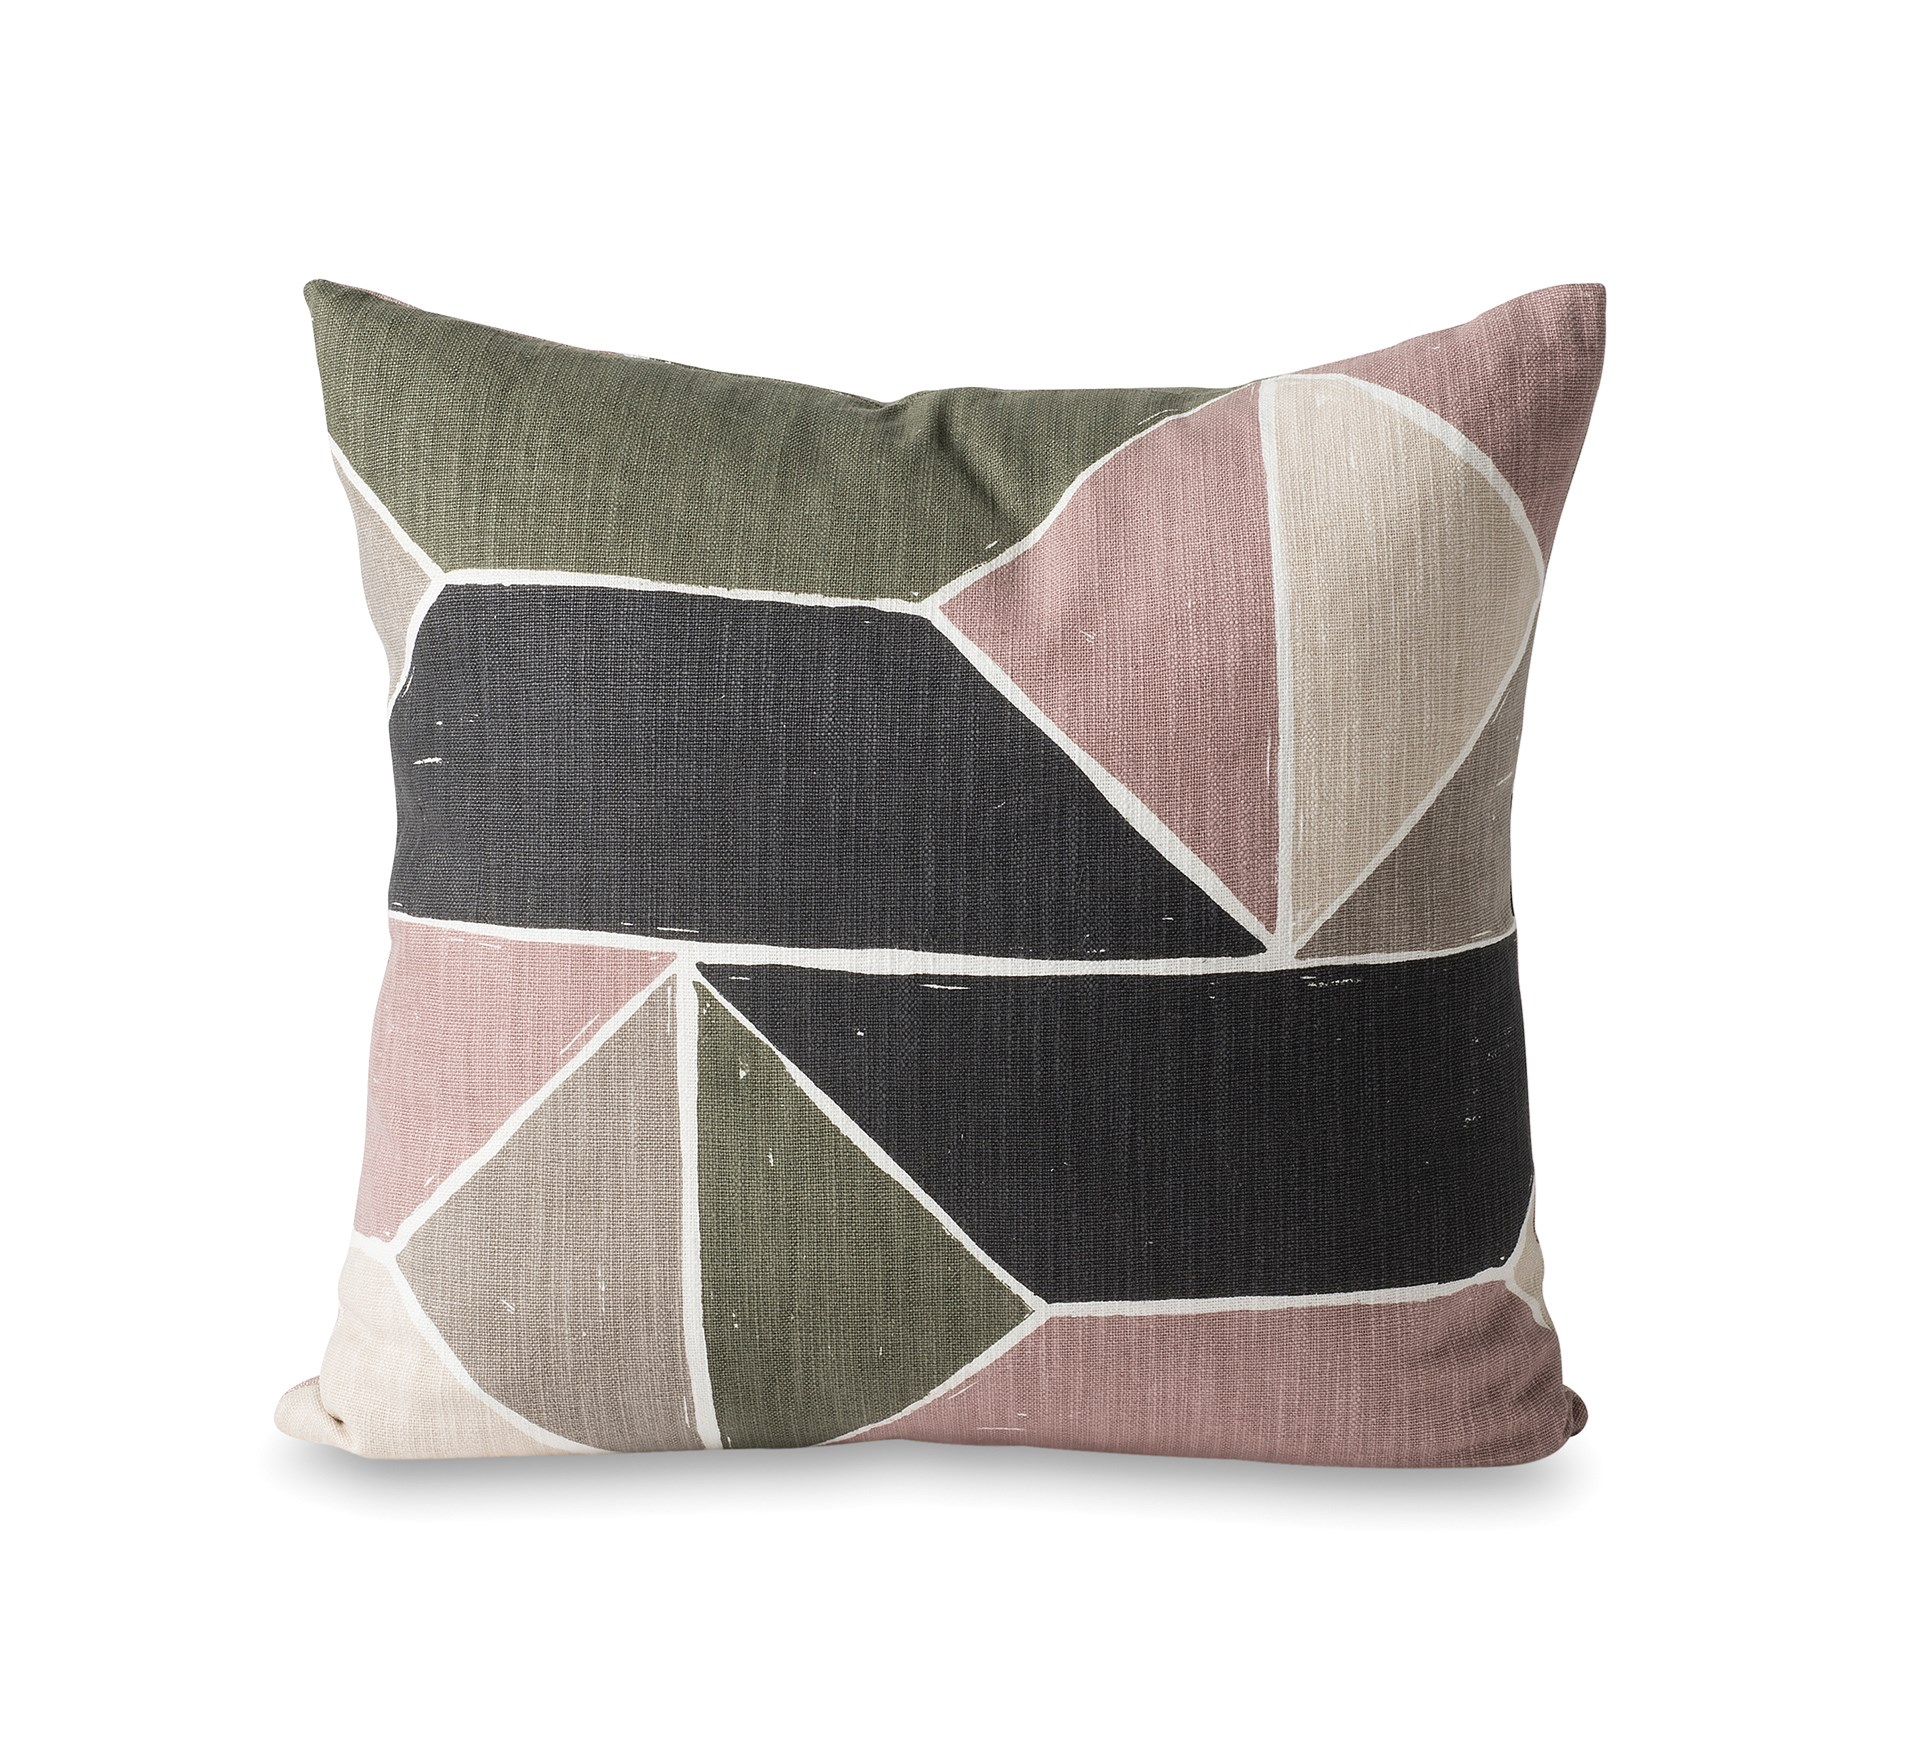 Paso printed cushion cover, $69.90.